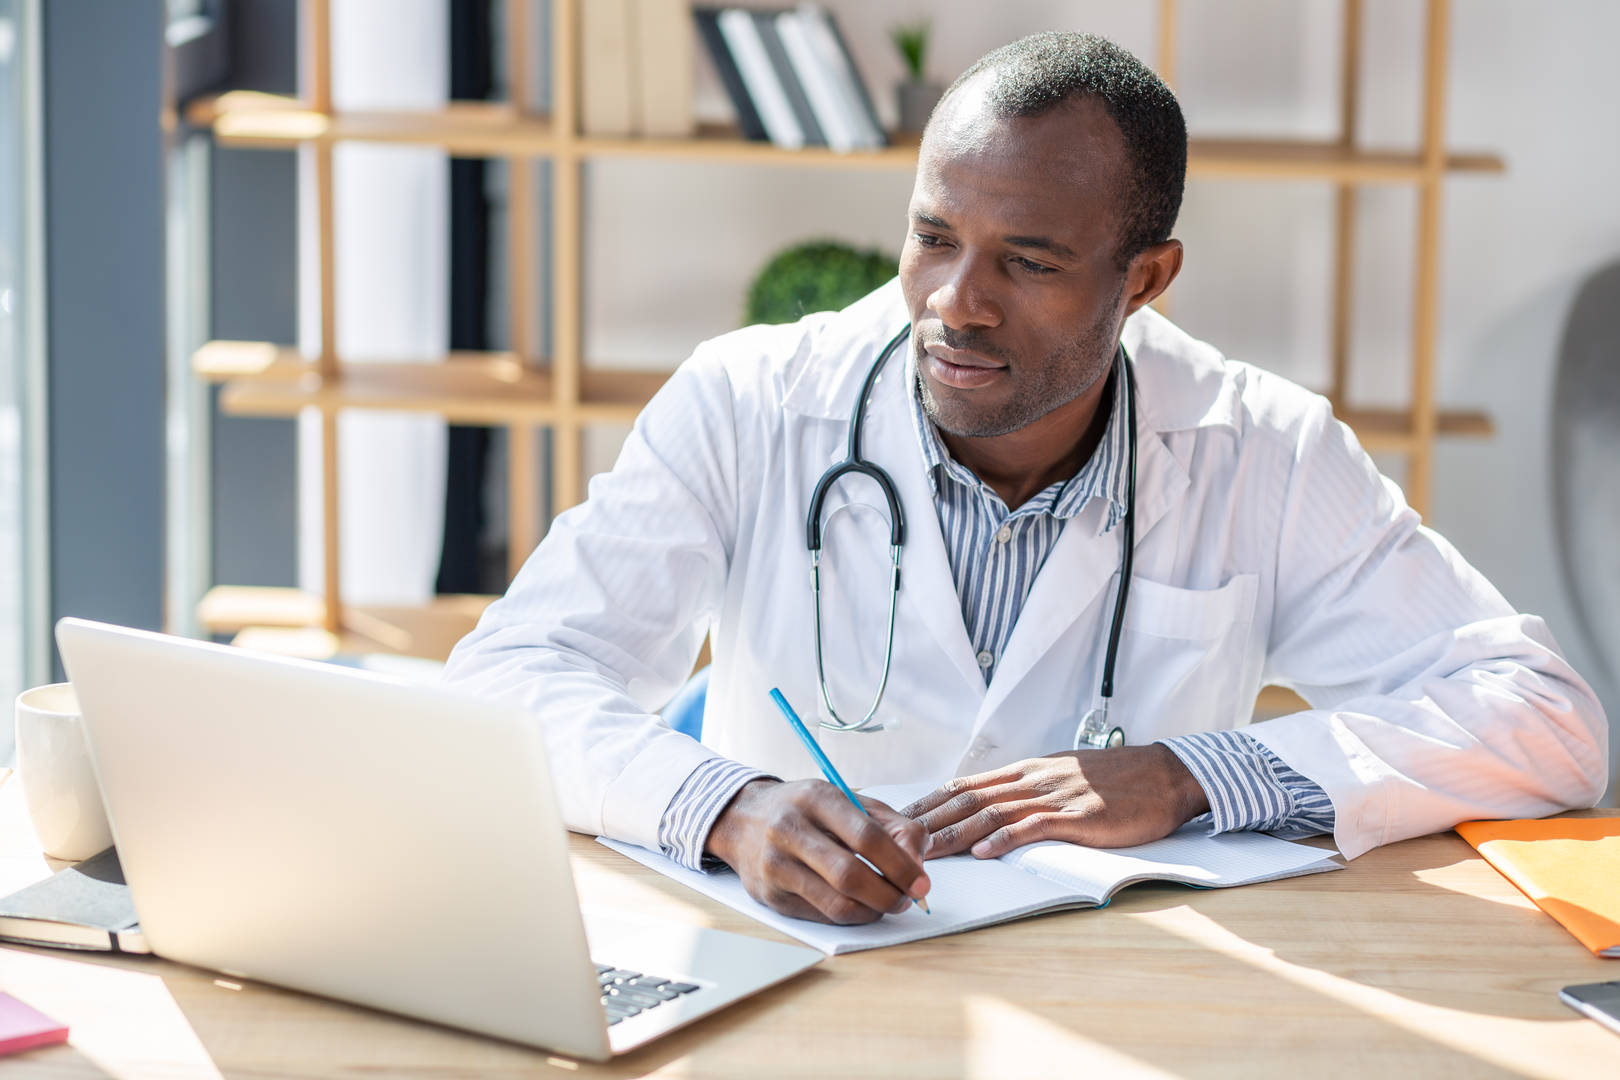 Physician looks at laptop and takes notes